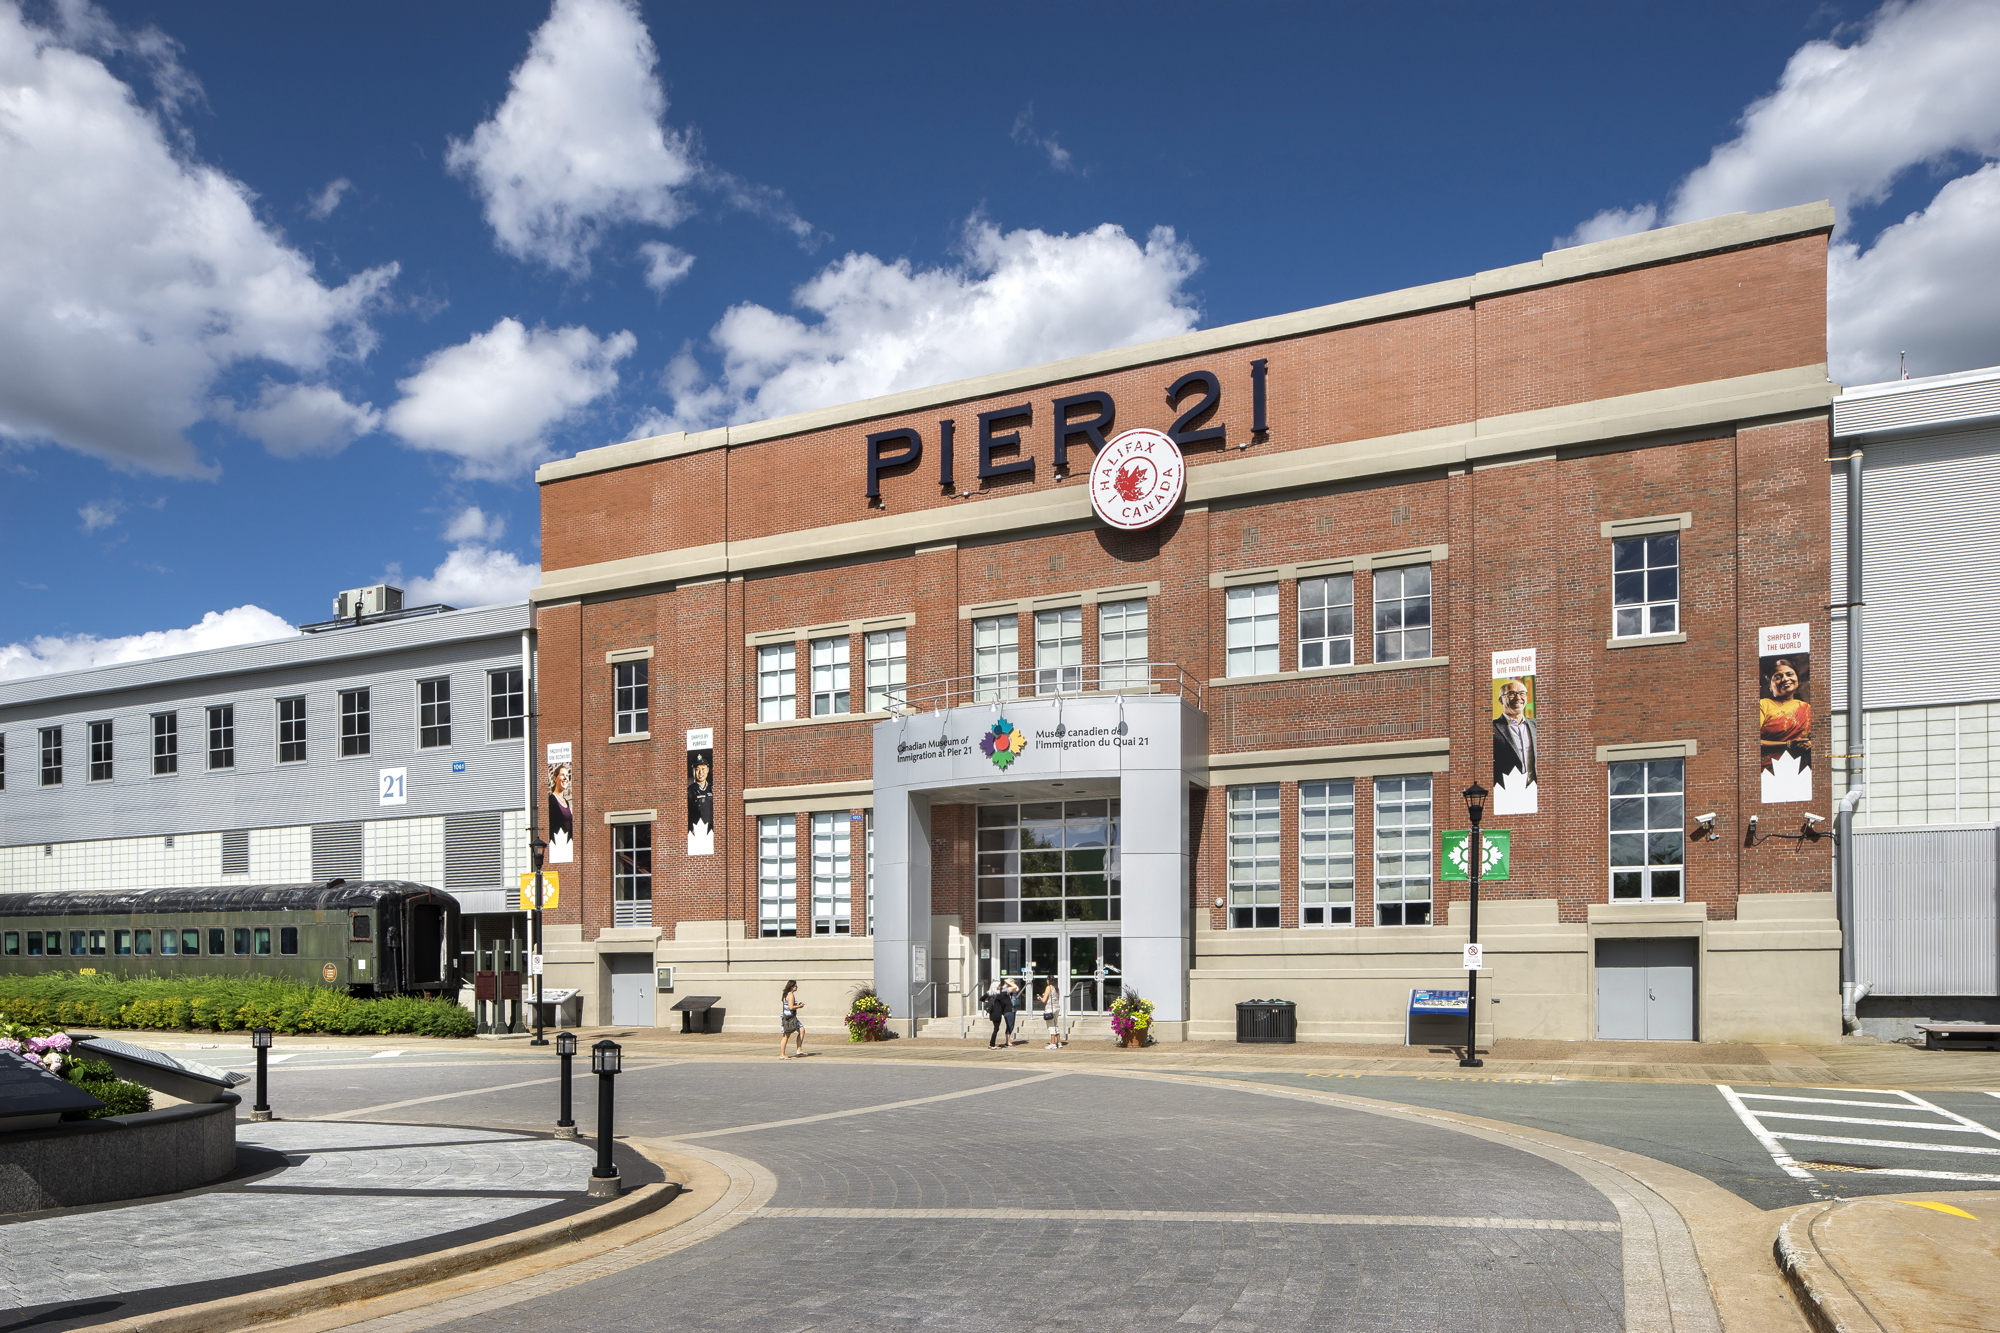 Exterior view of Pier 21. Photo by Steven Evans